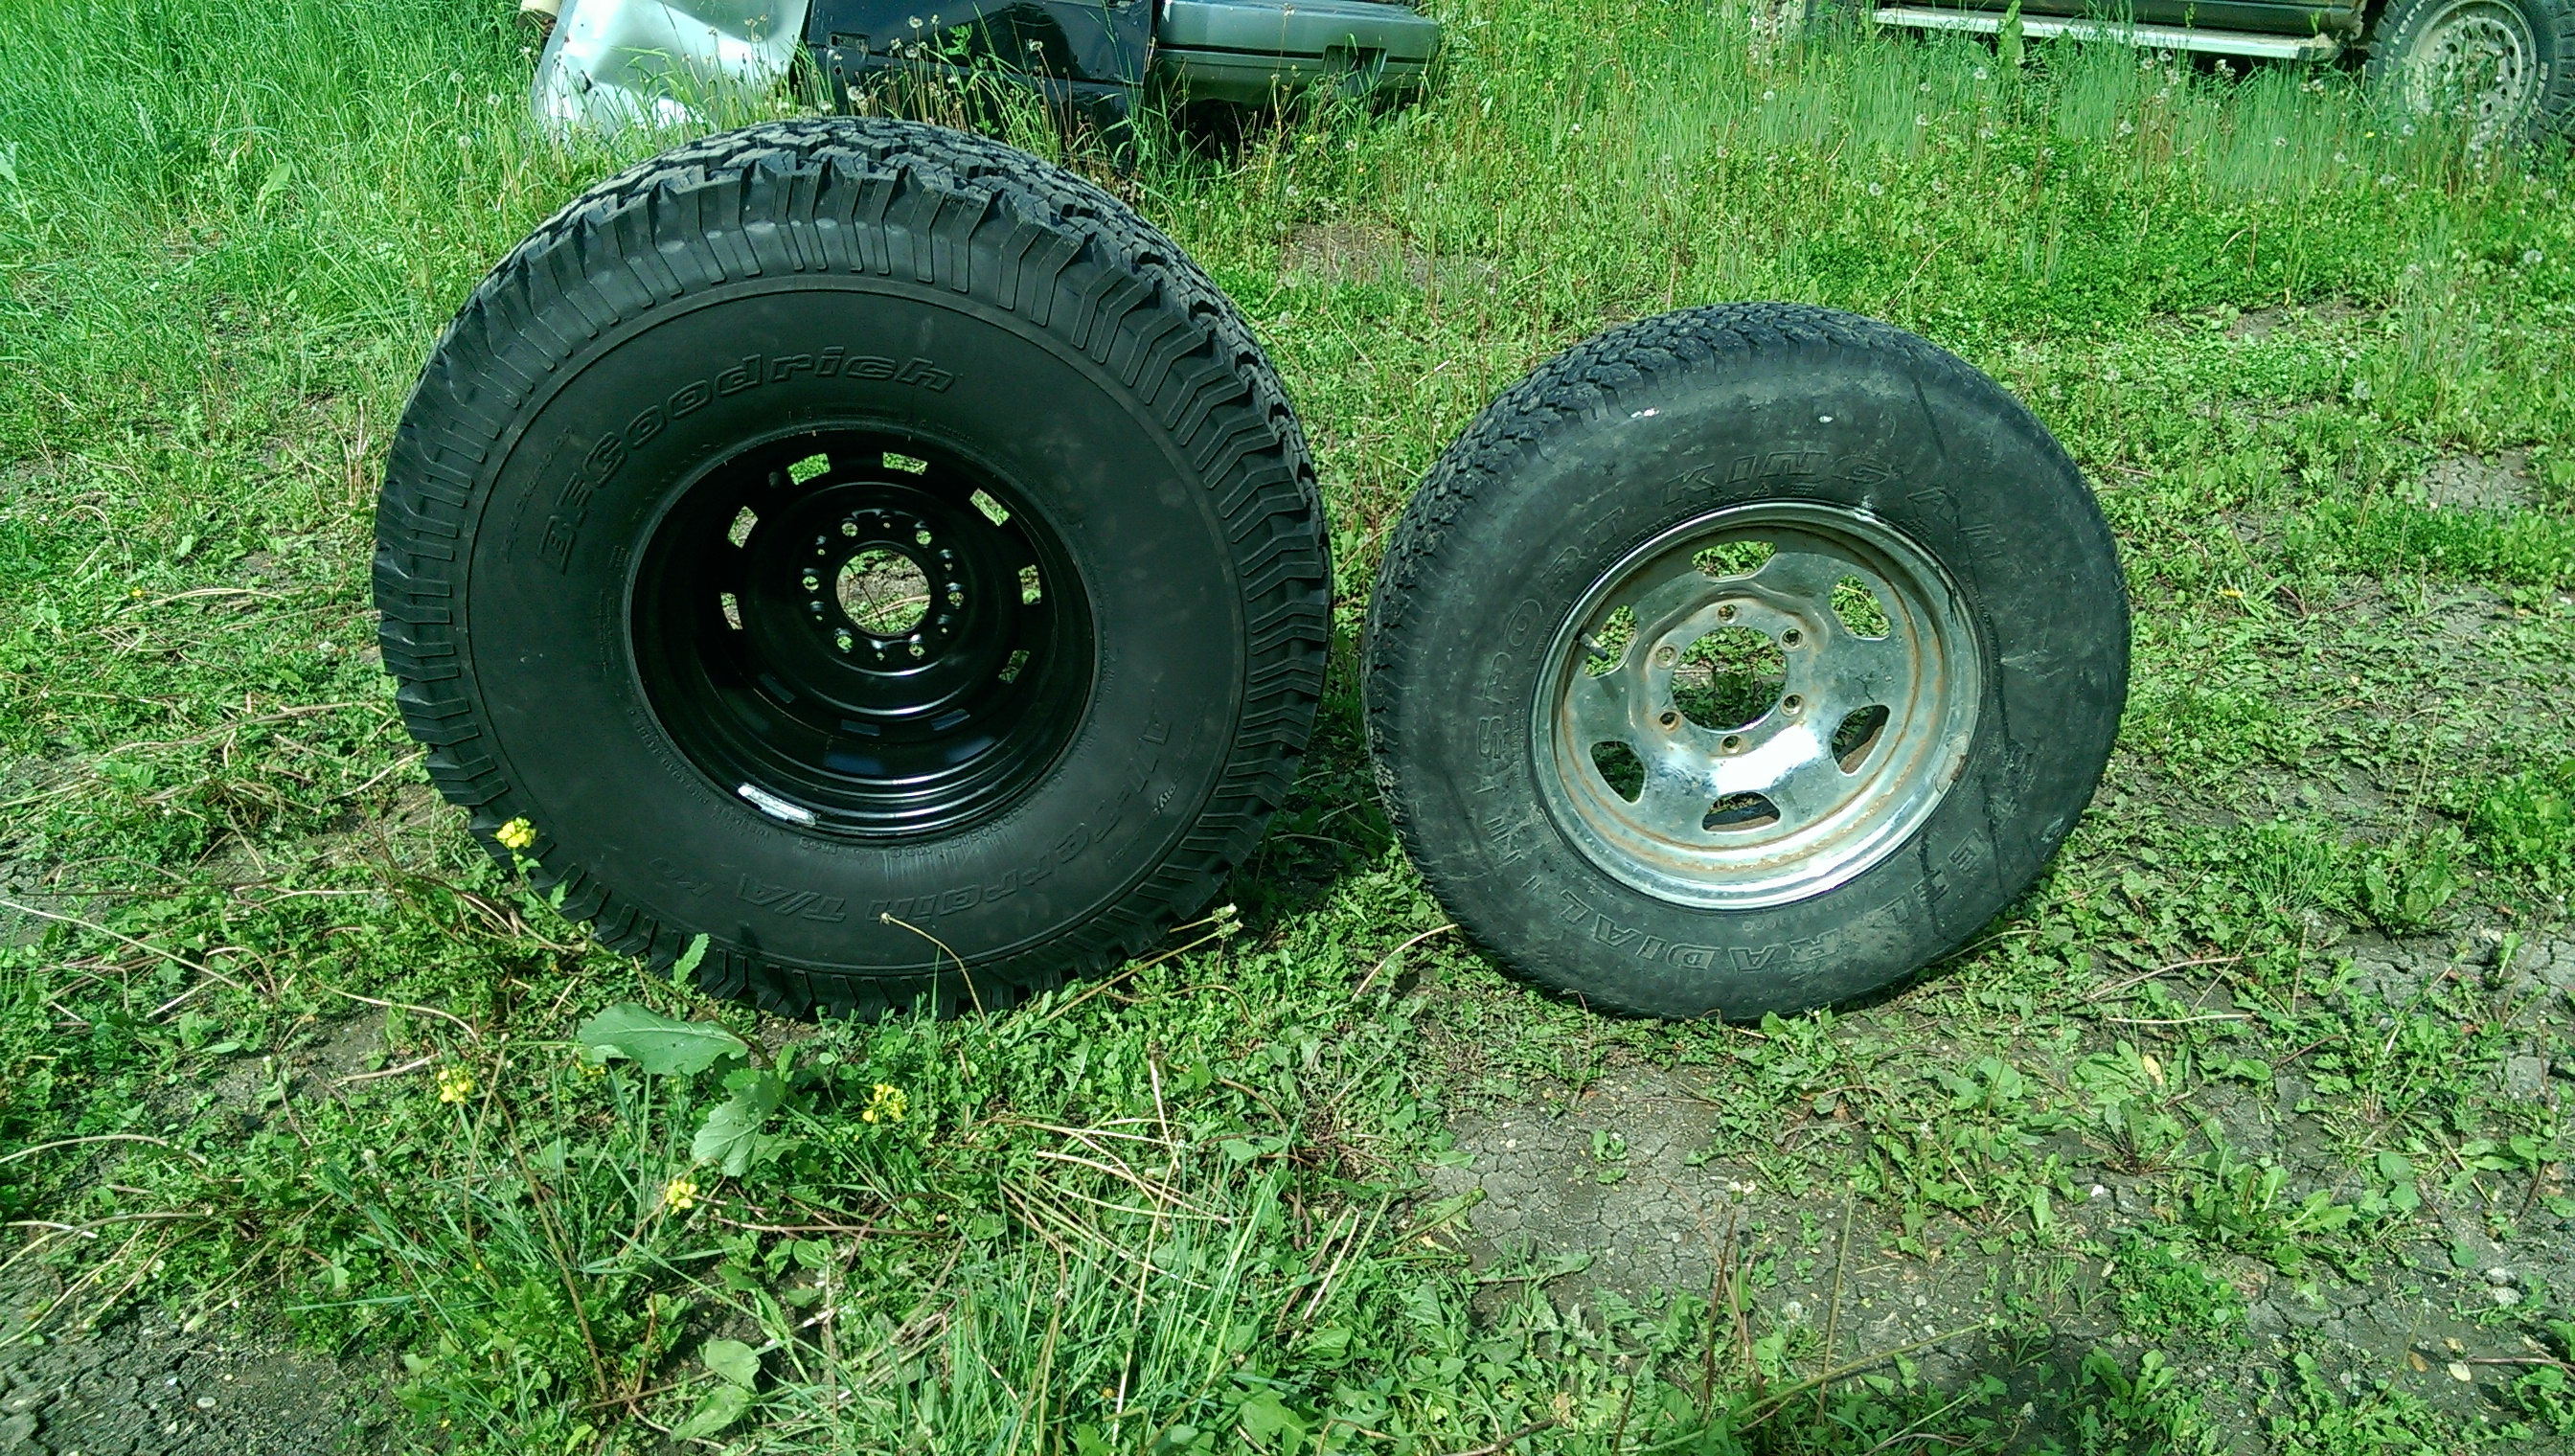 225/75r15 on right and 35x12.5r15 on left